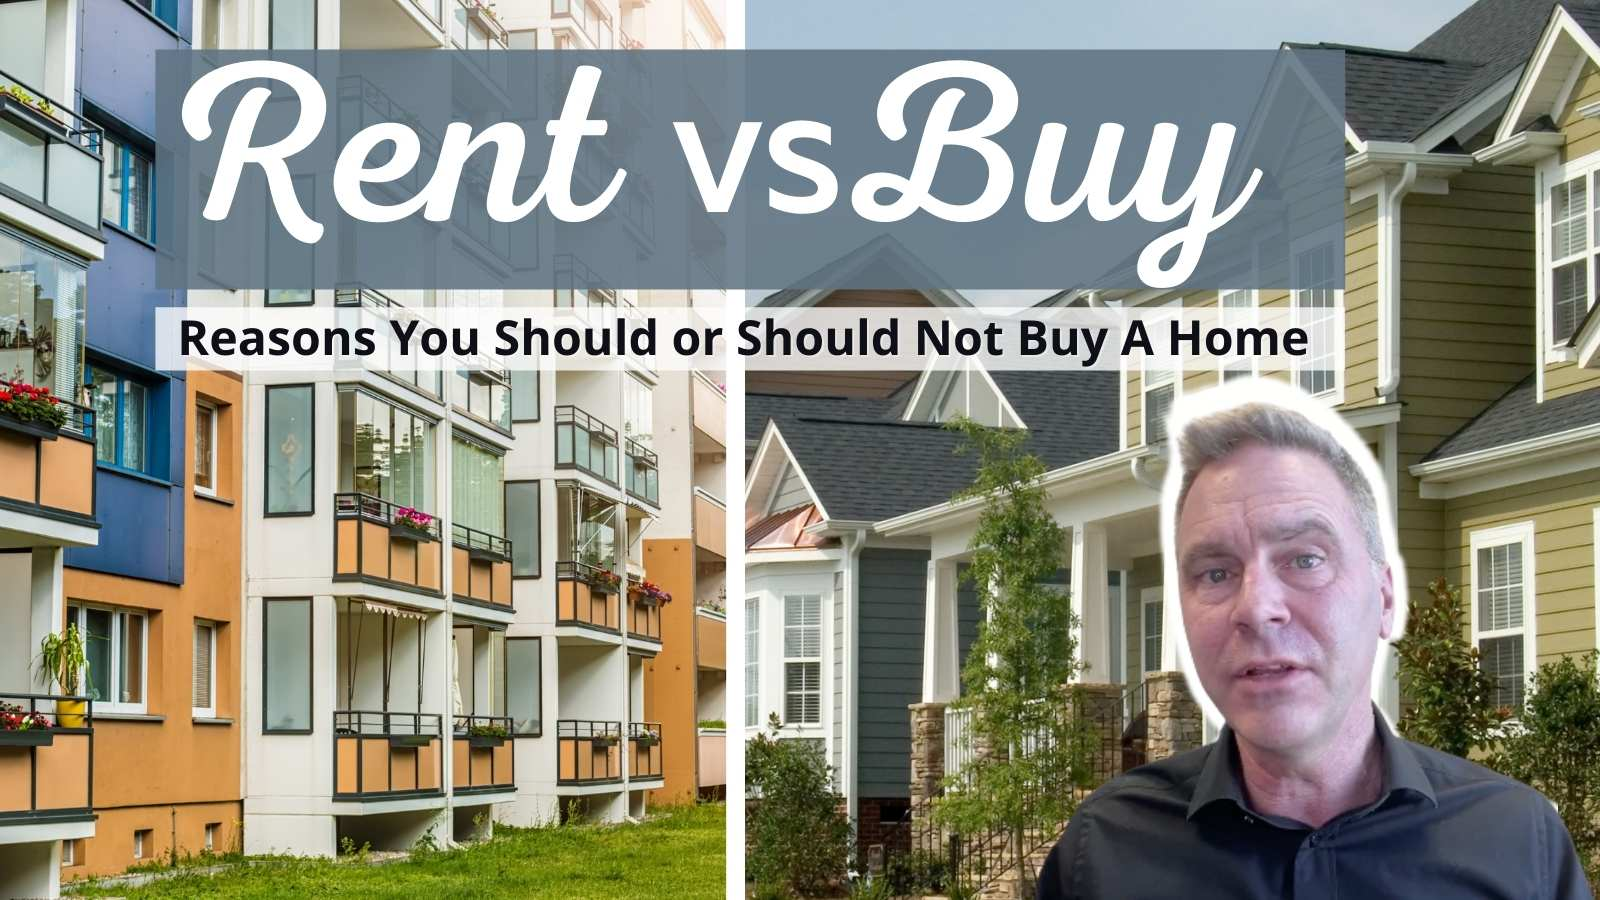 Is It Better To Own Your Home or Rent Your Home? | Edmonton Realtor Blog | Dwight Streu